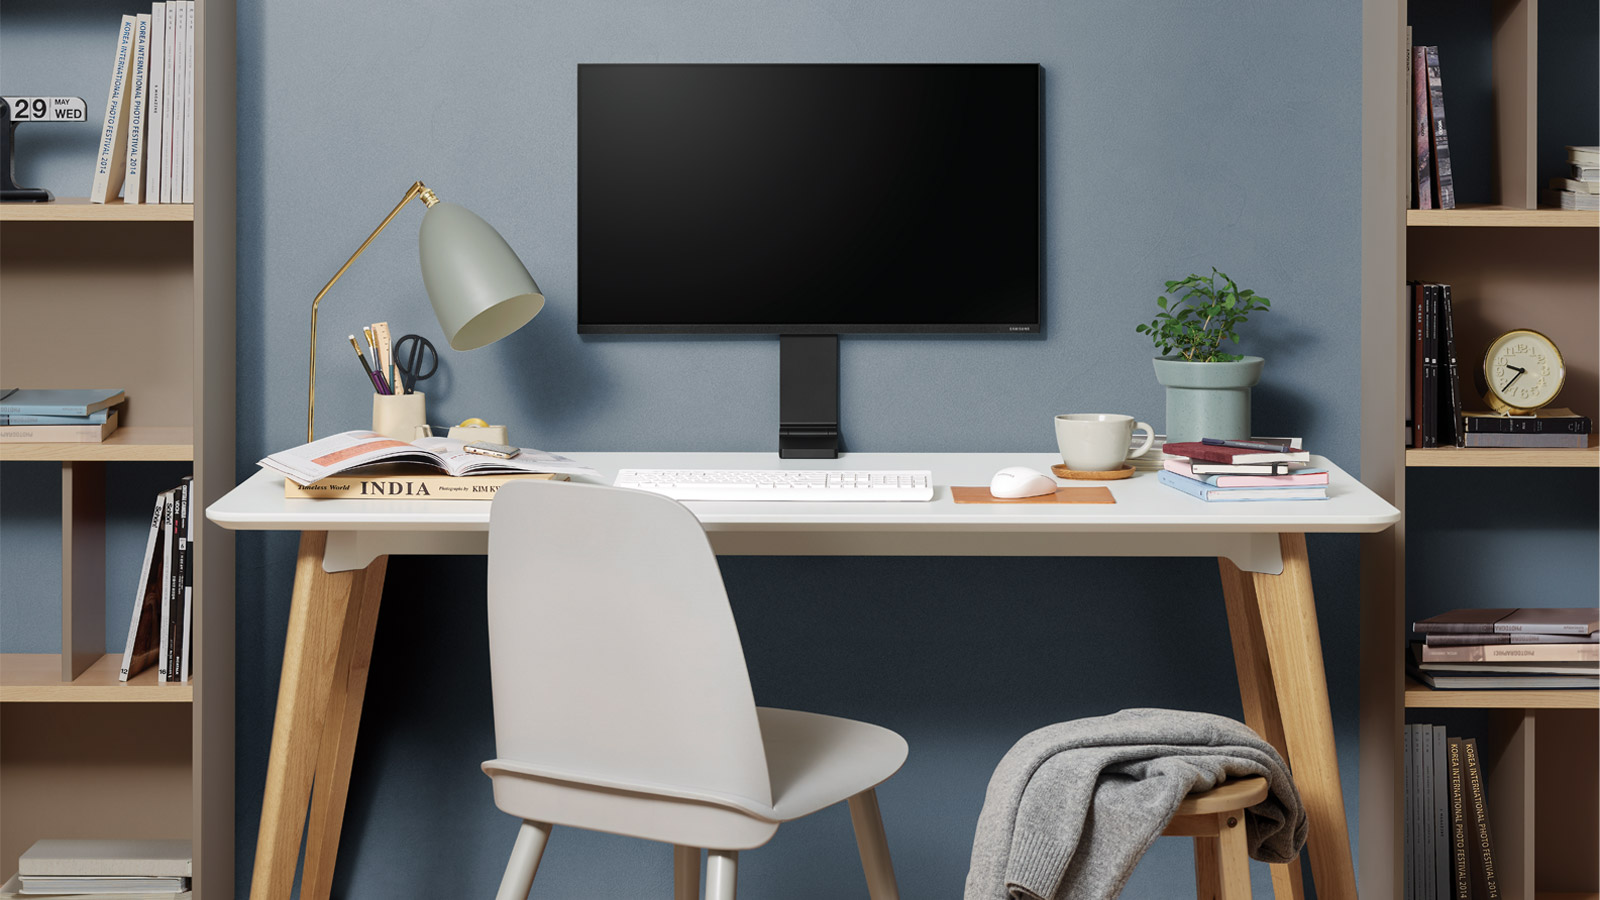 Samsung space monitor, home office